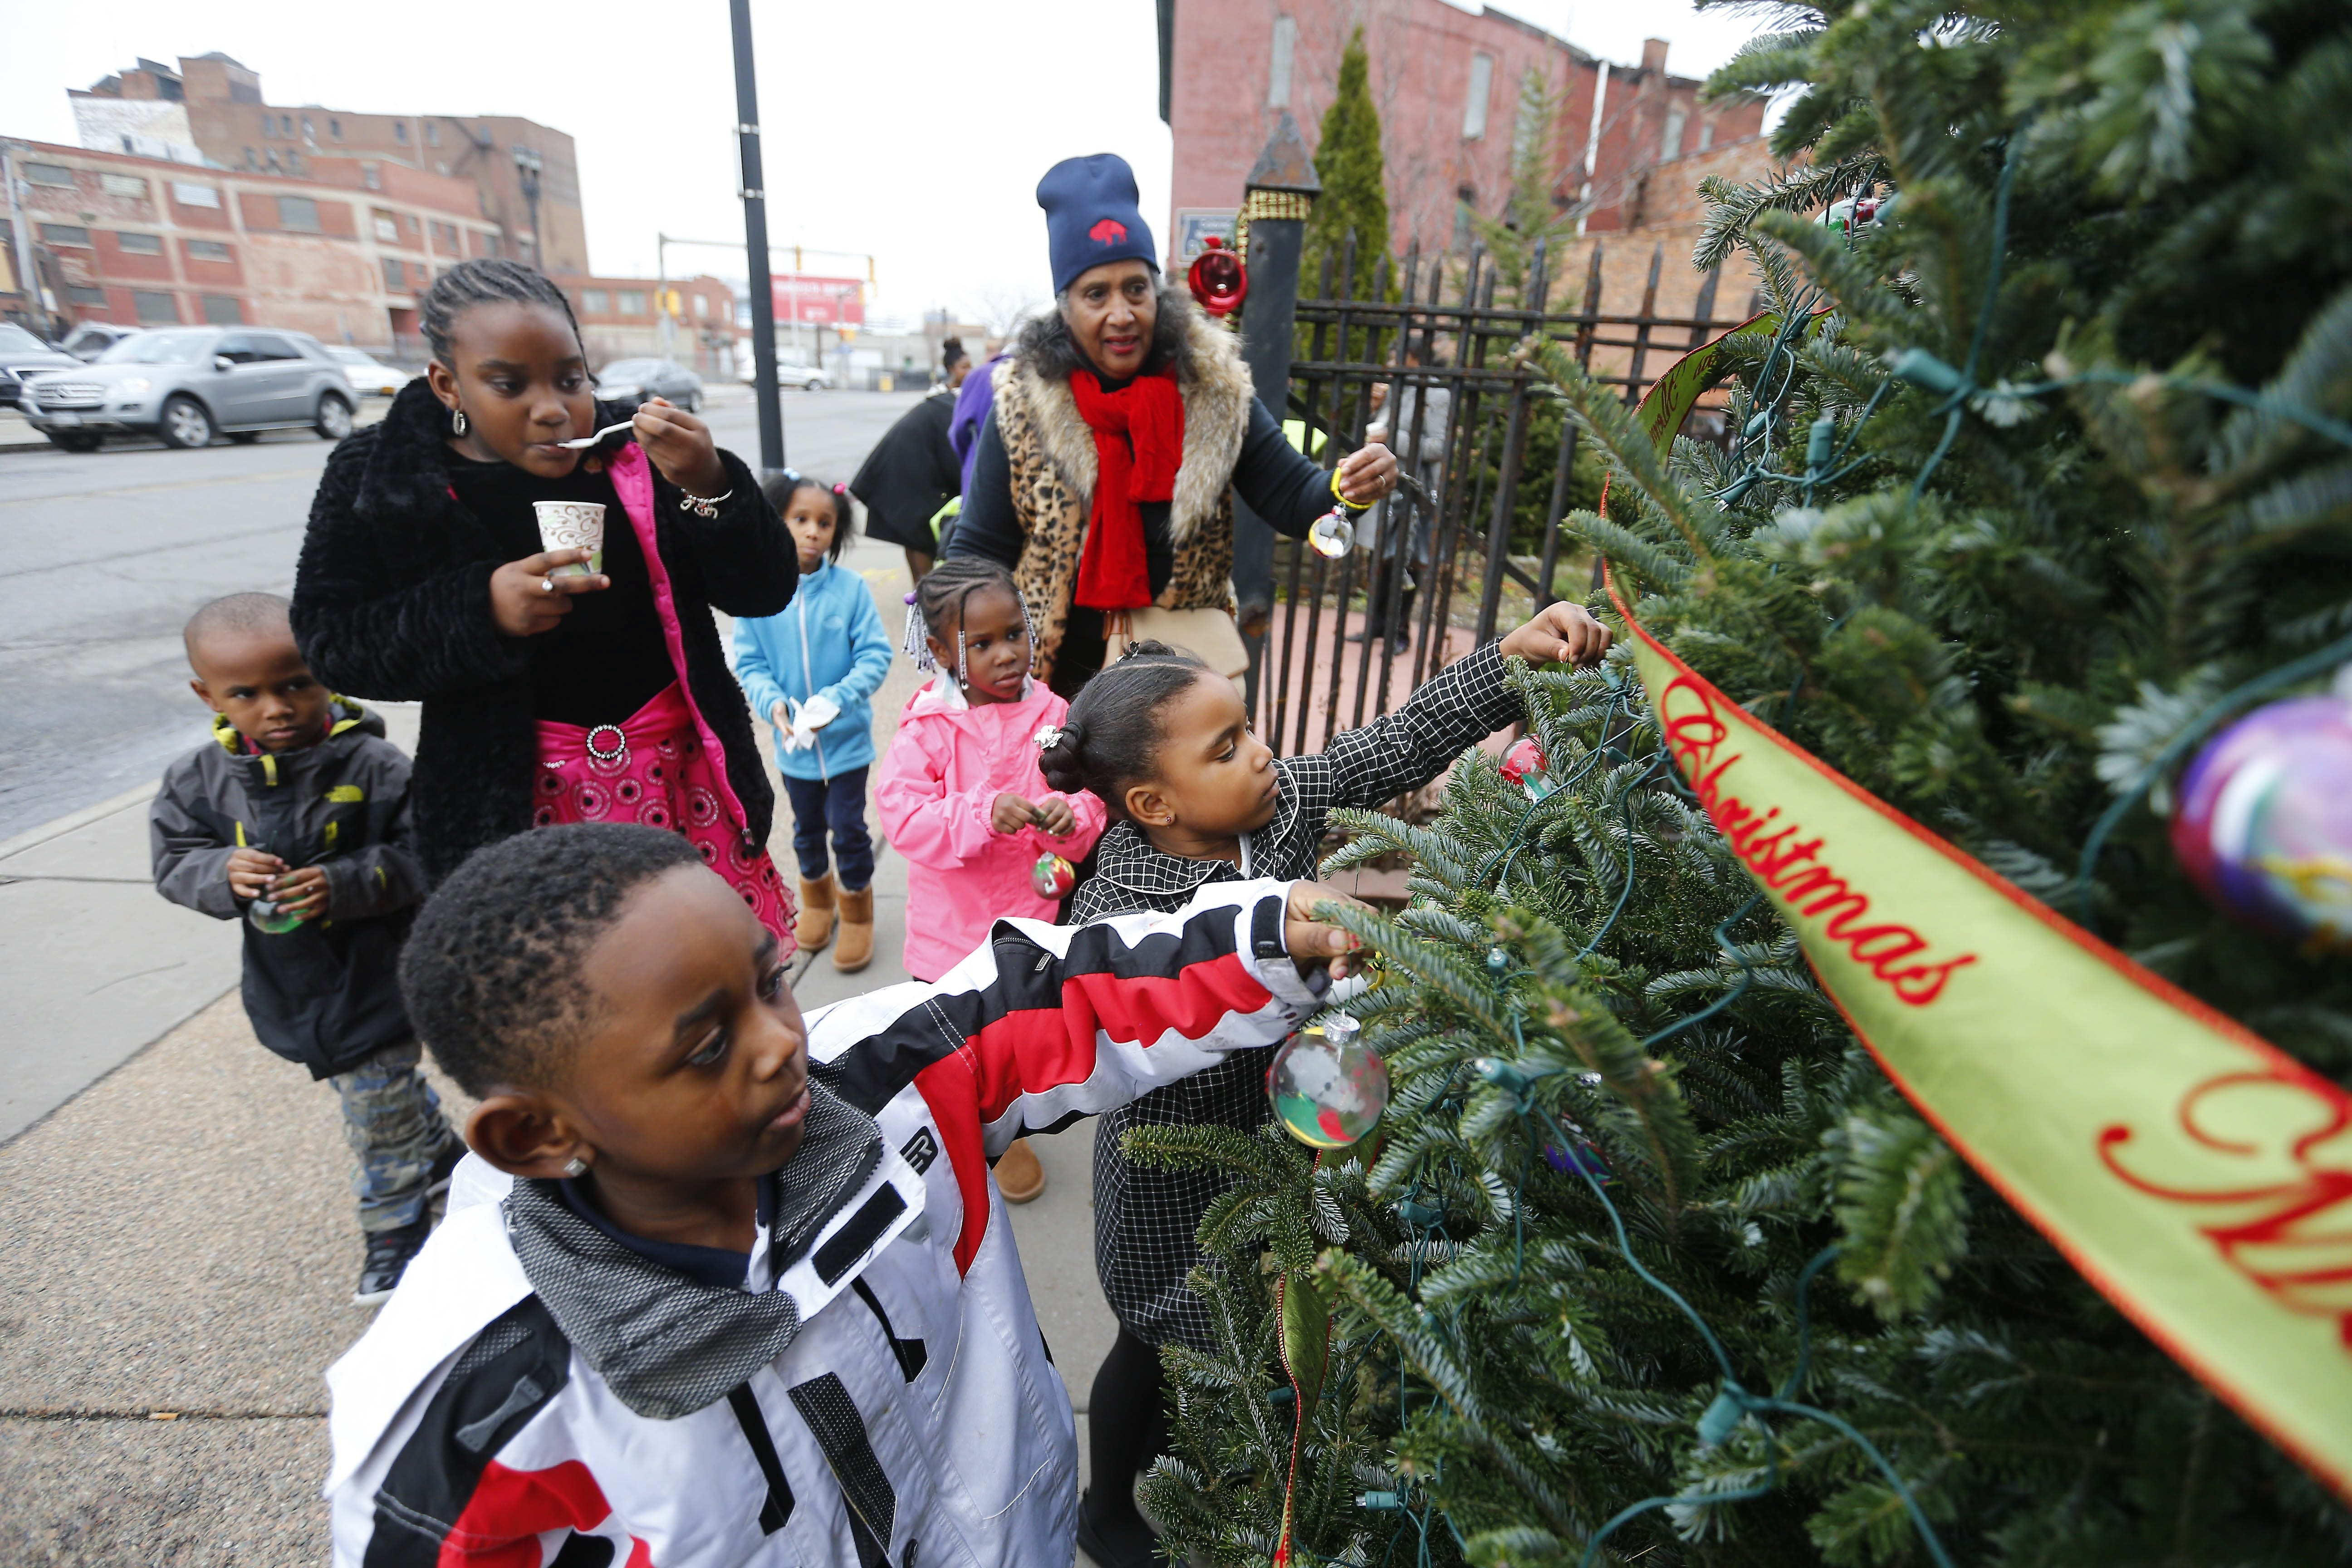 Eunice Lewin, top center, urges kids to hang their handmade  ornaments on a tree during a Christmas  celebration in front of Michigan Street Baptist Church. See a photo gallery at buffalonews.com.